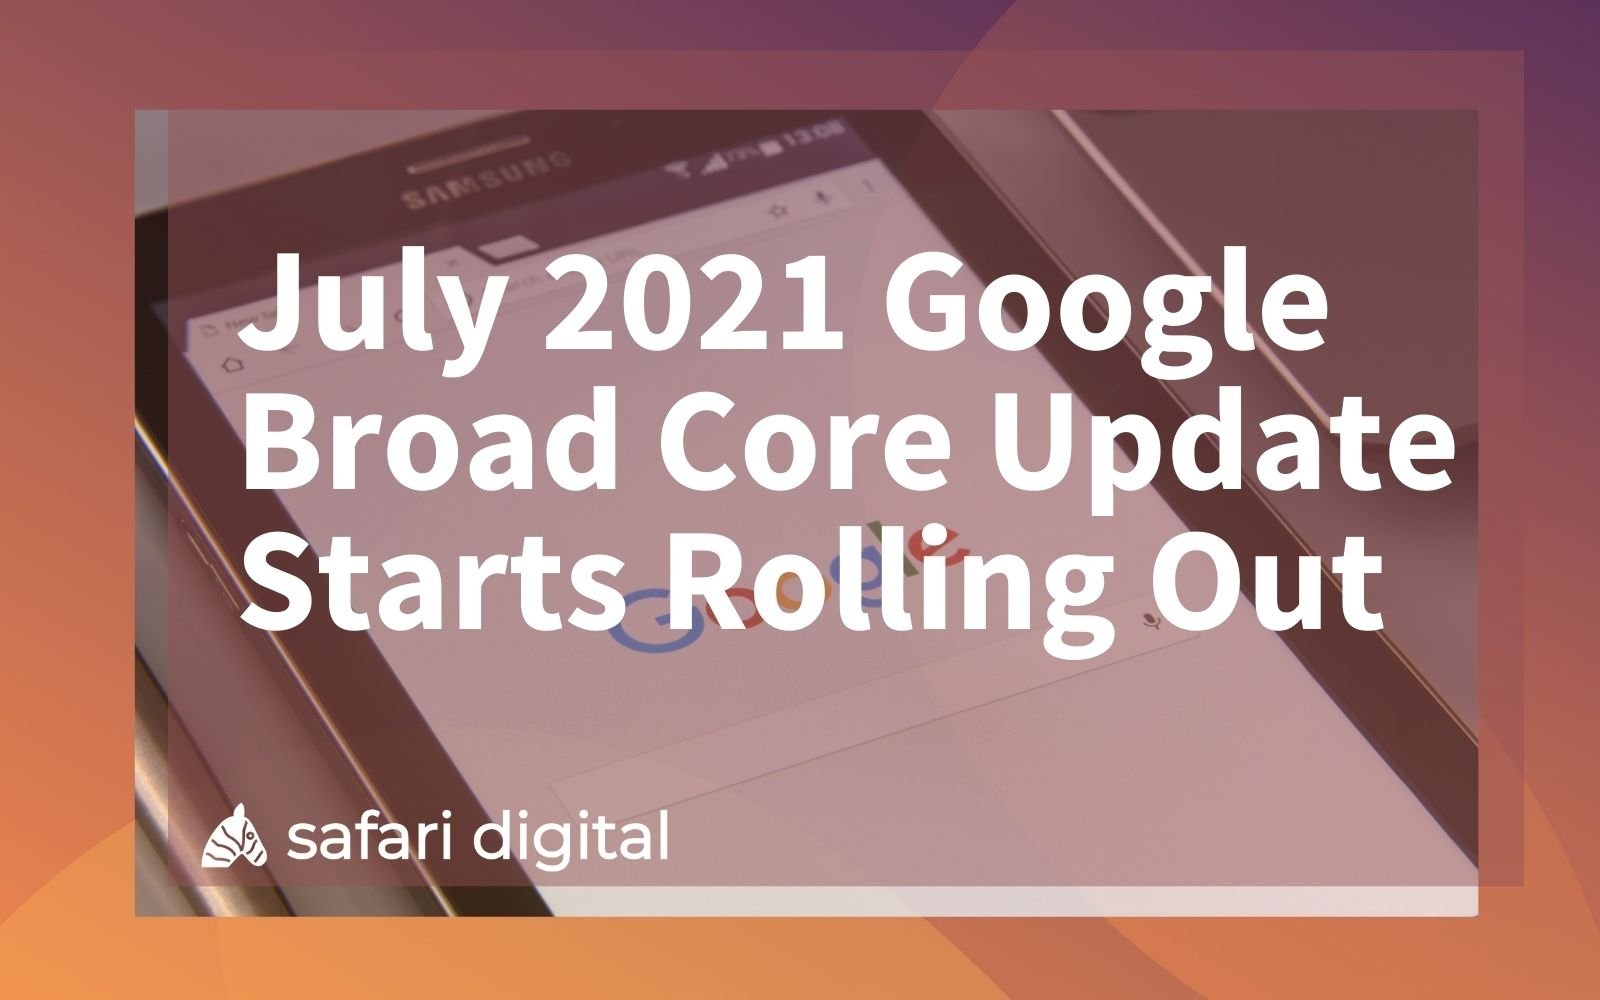 July 2021 Google Broad Core Update Starts Rolling Out